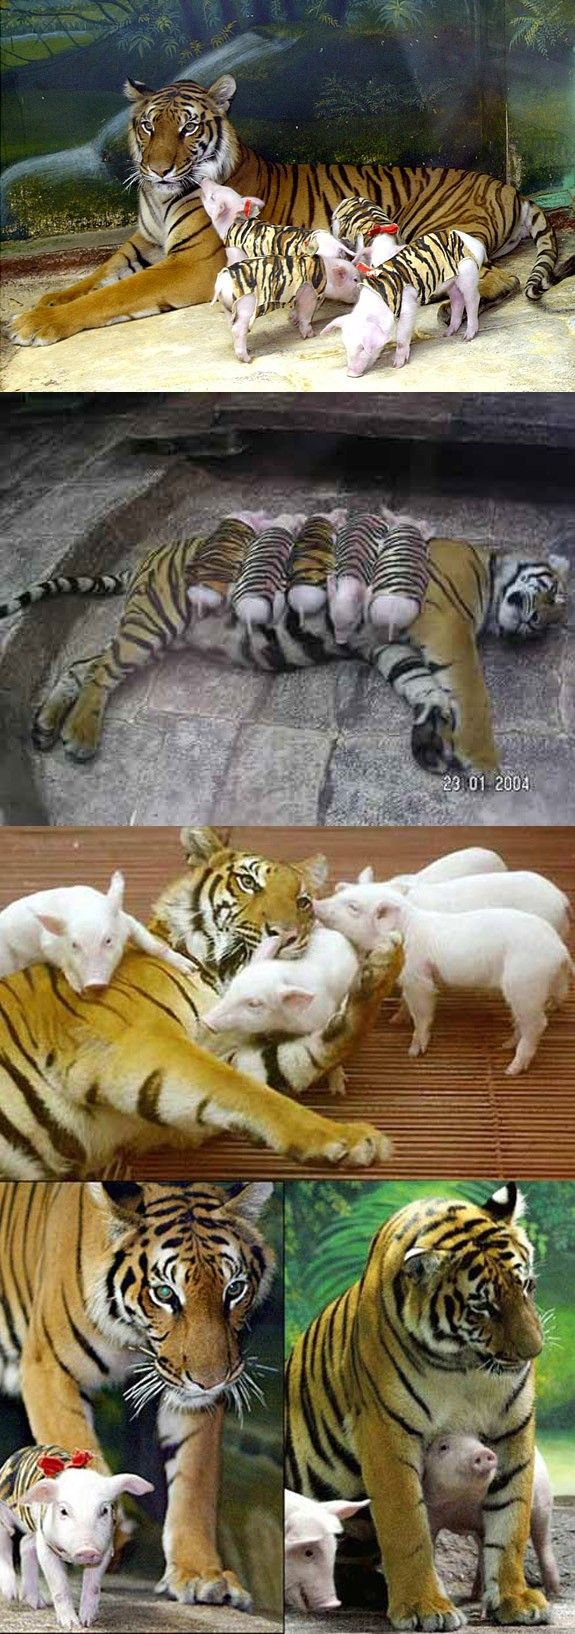 A tiger mother lost her cubs from premature labour, shortly after she became depressed and her health declined. They wrapped piglets up in tiger cloth and ...